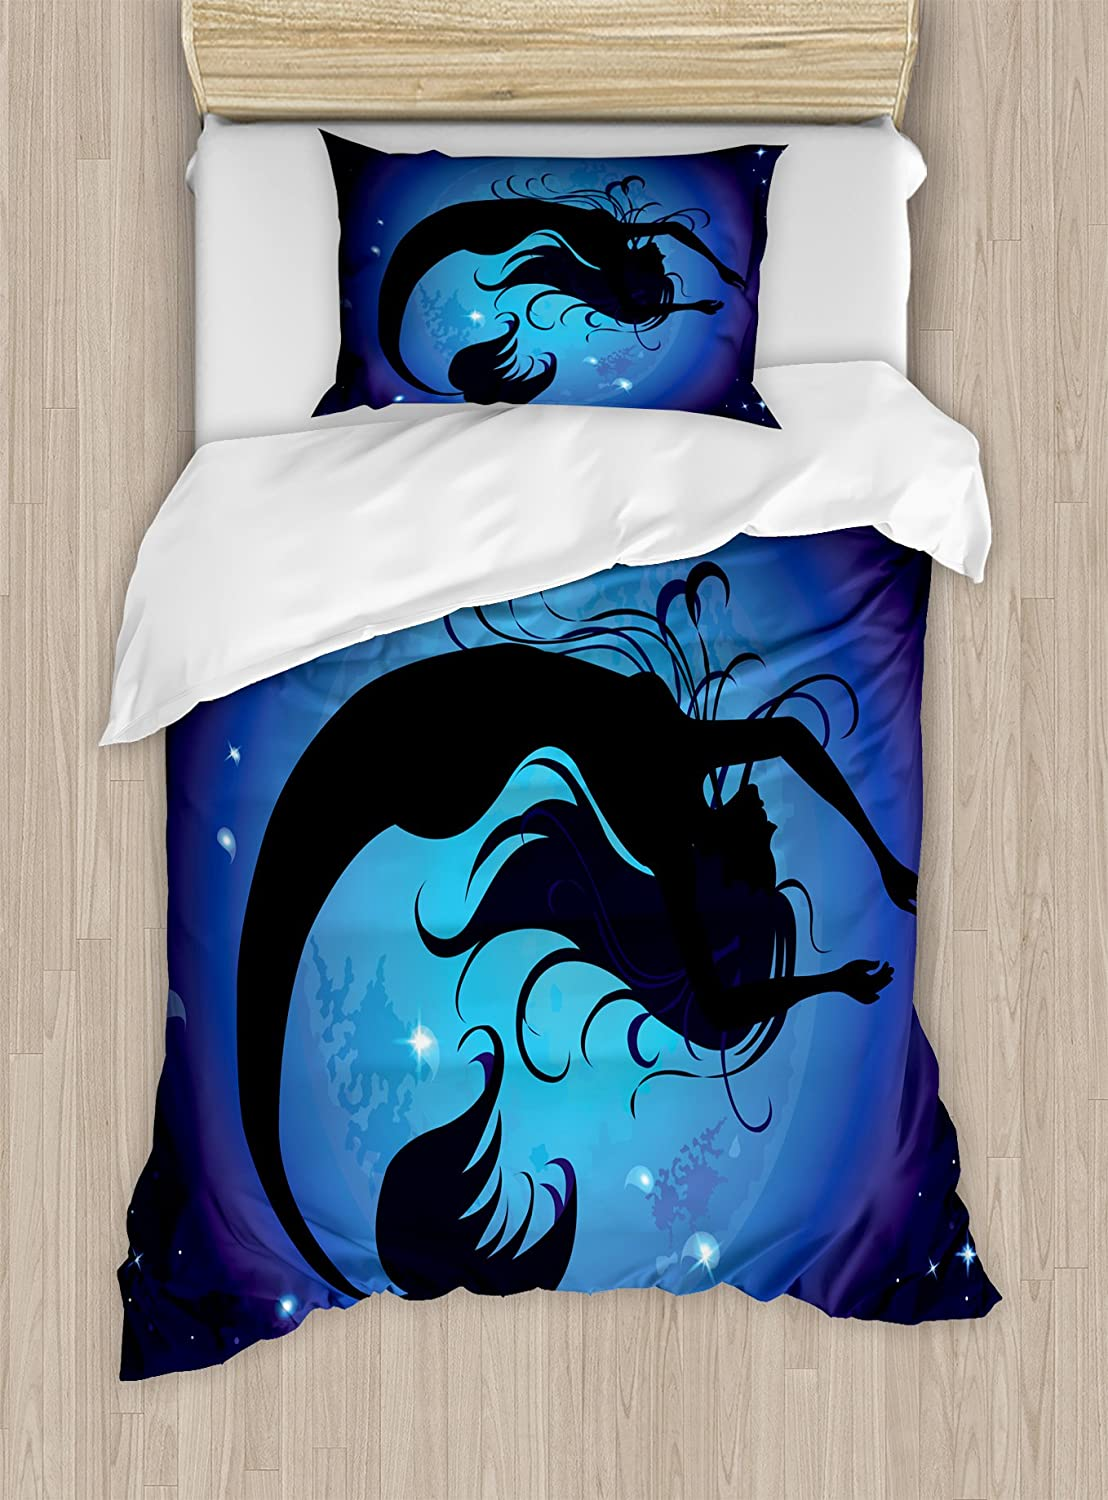 Blue Red Black Decorative 2 Piece Bedding Set with 1 Pillow Sham Abstract Lines Background Ice Hockey Pattern Competitive Match Winter Season Ambesonne Sport Duvet Cover Set Twin Size